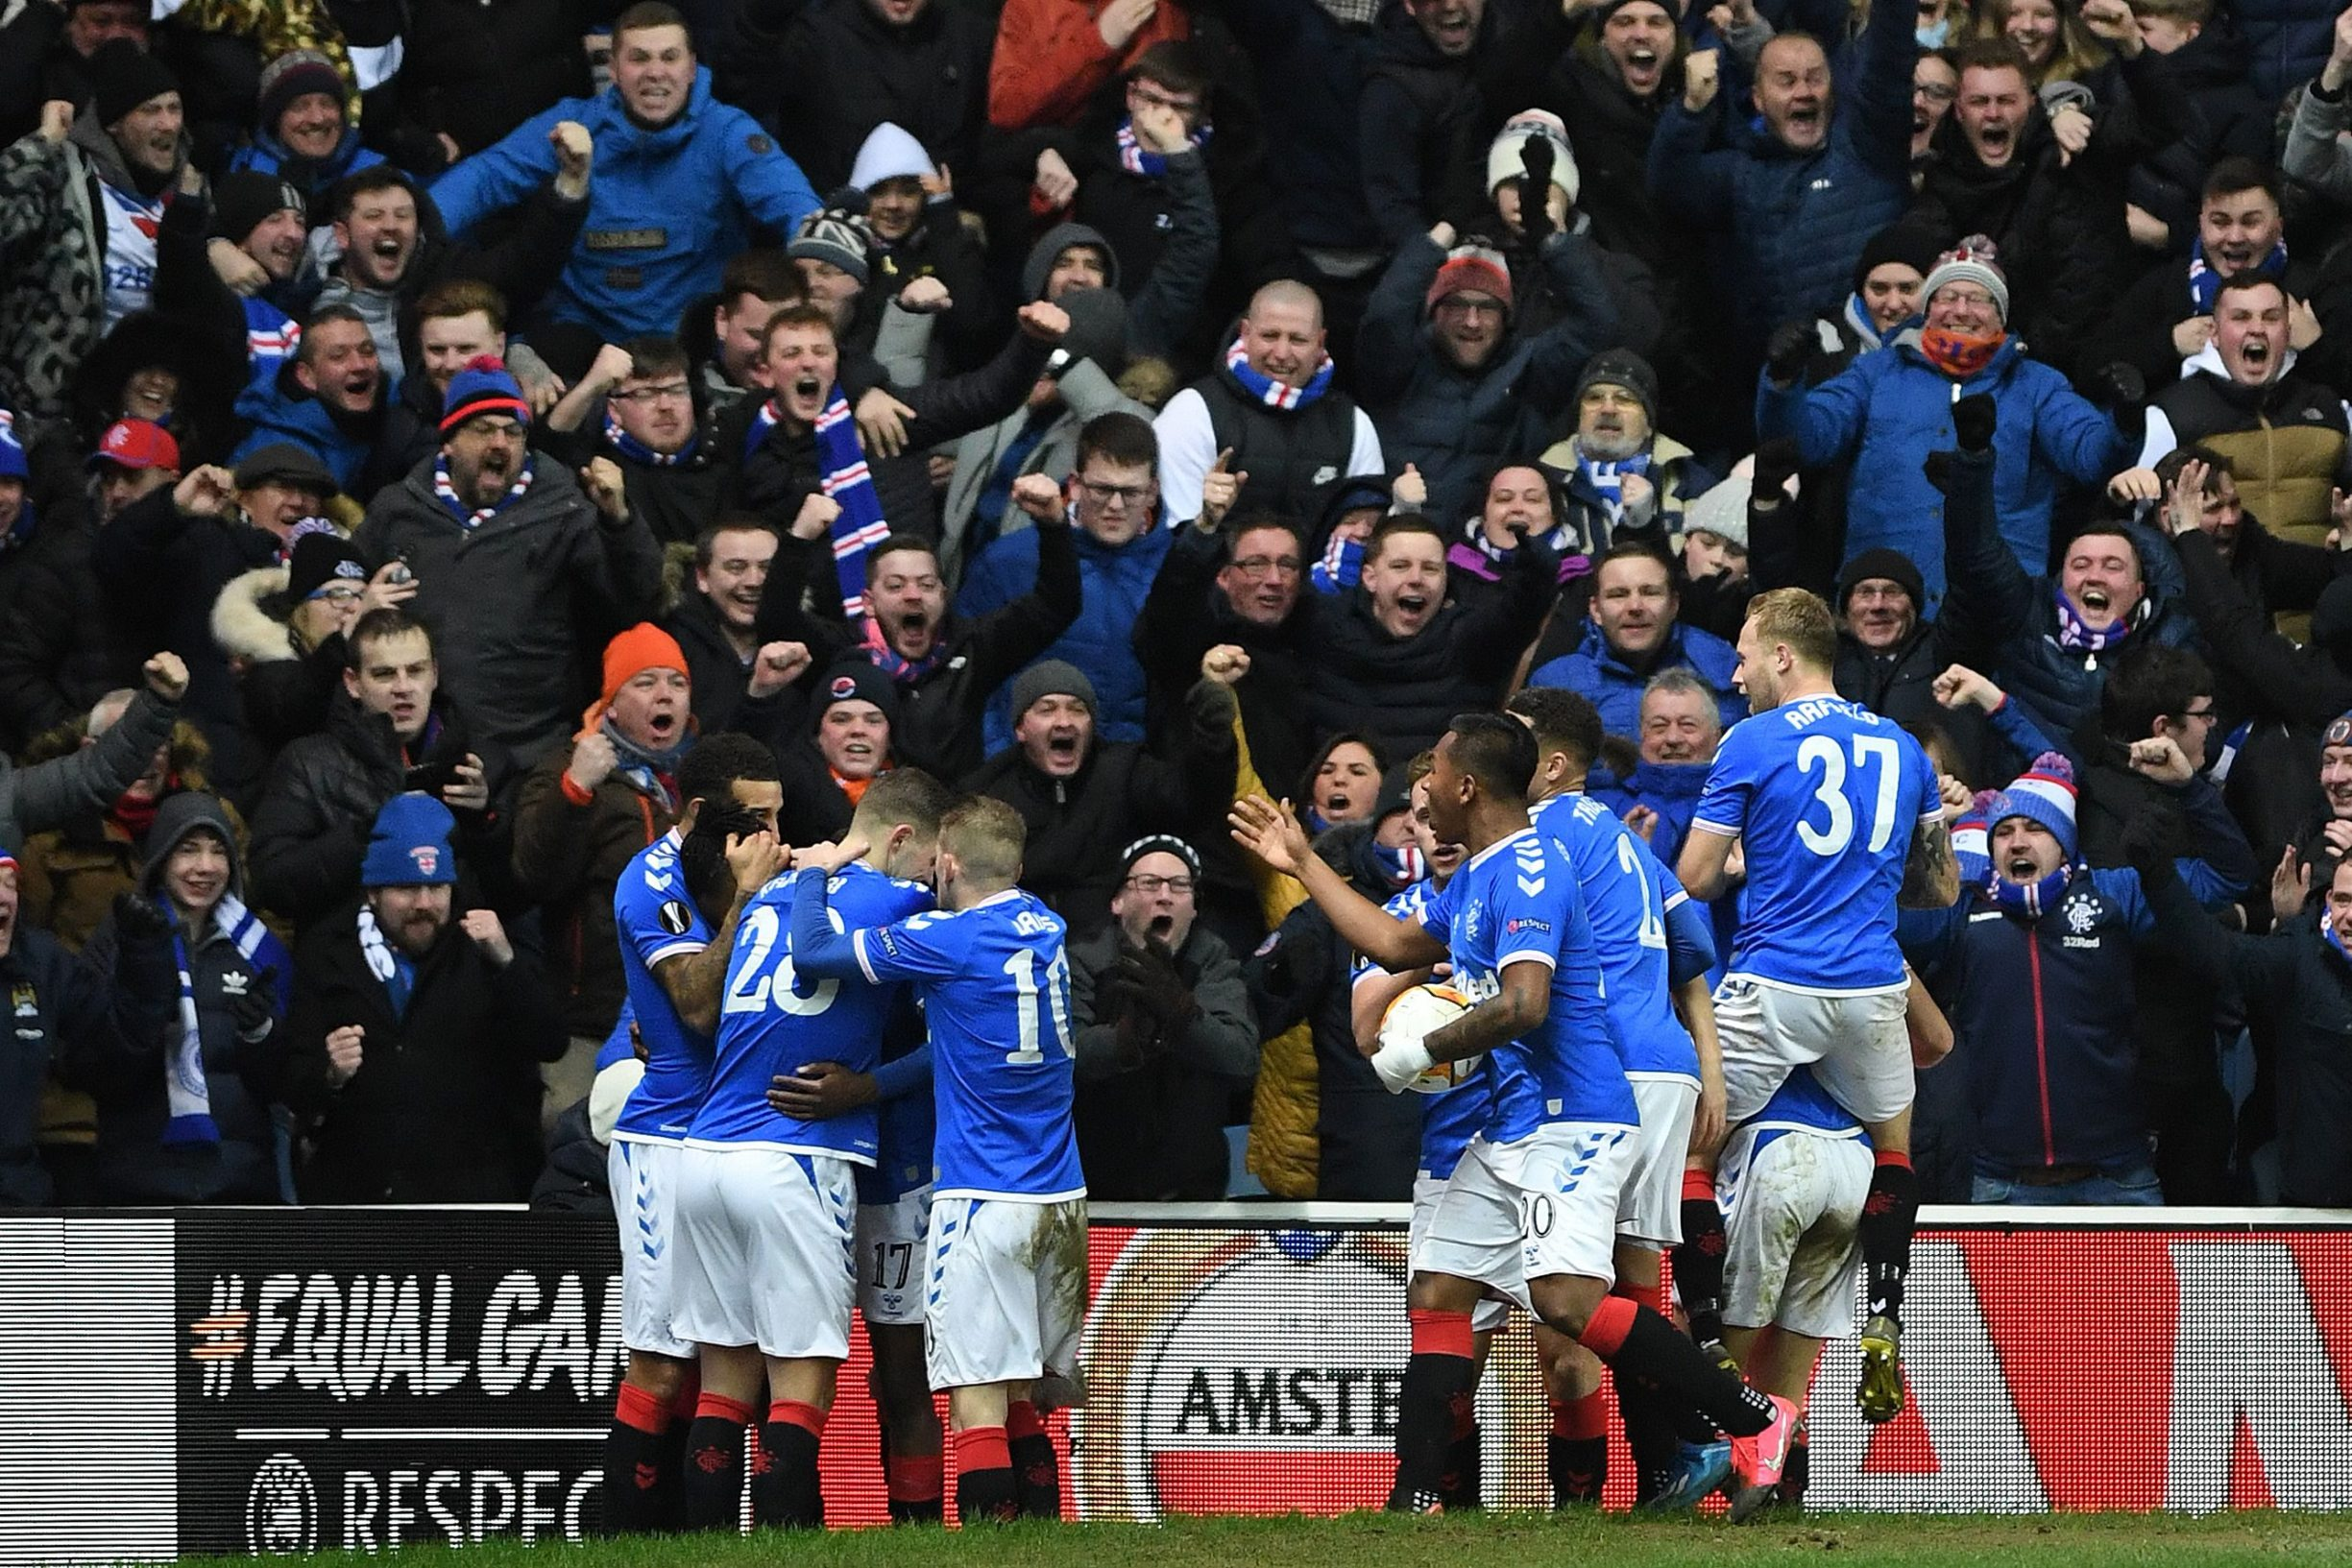 Rangers' English striker Joseph Ayodele-Aribo celebrates scoring his team's second goal during the UEFA Europa League round of 32 first leg football match between Rangers and Sporting Braga at the Ibrox Stadium in Glasgow on February 20, 2020. (Photo by ANDY BUCHANAN / AFP)